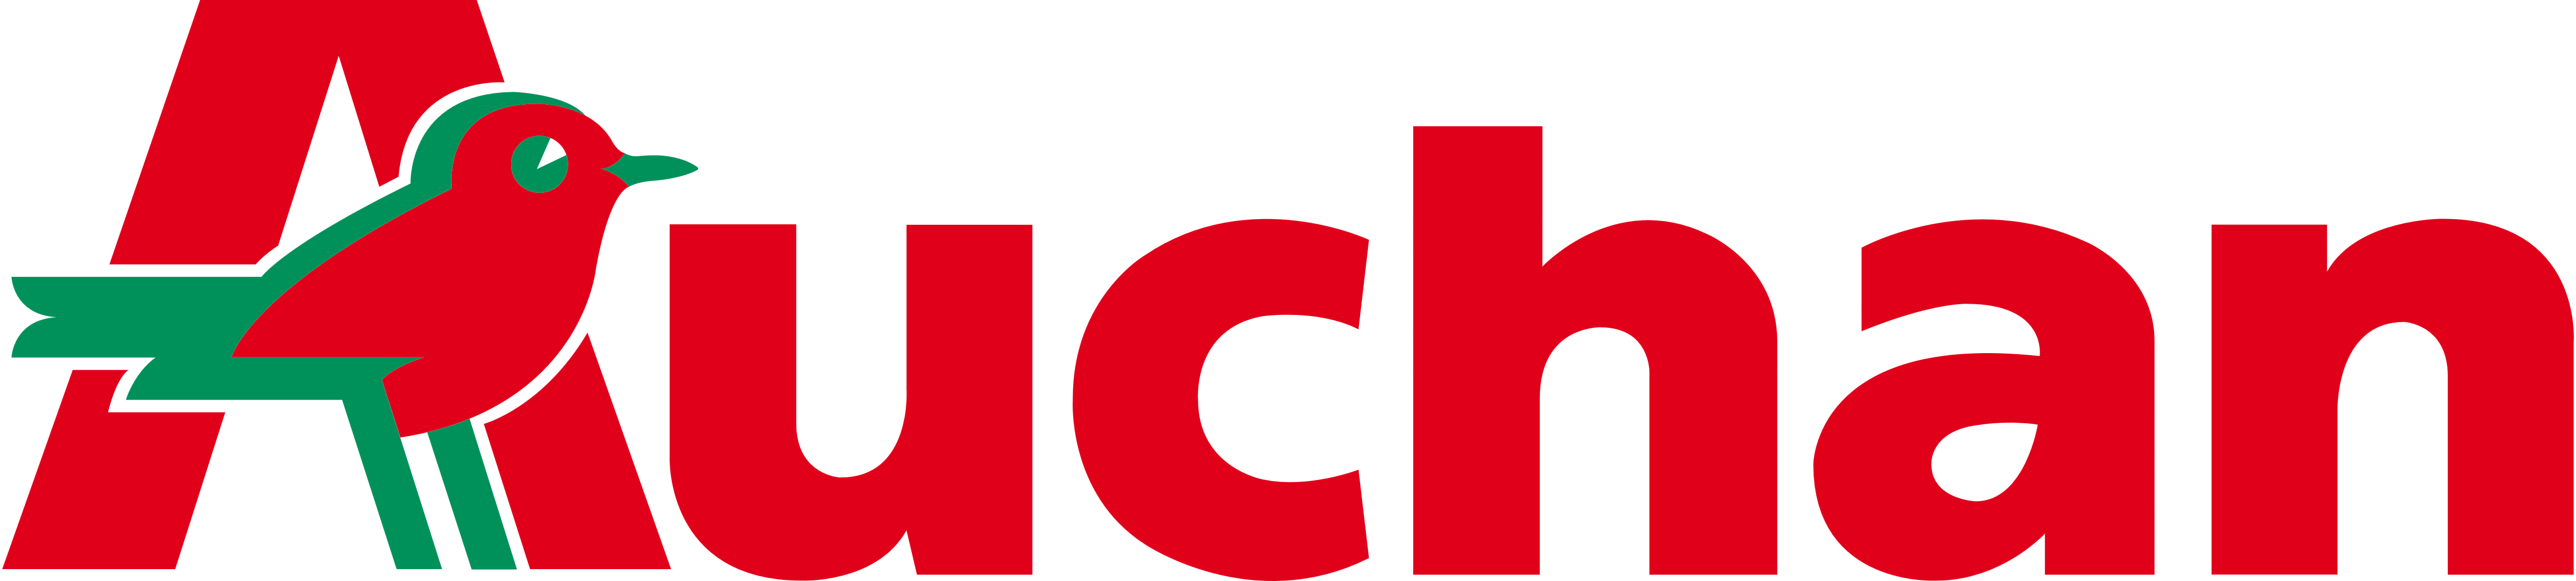 Charge card logo of Auchan